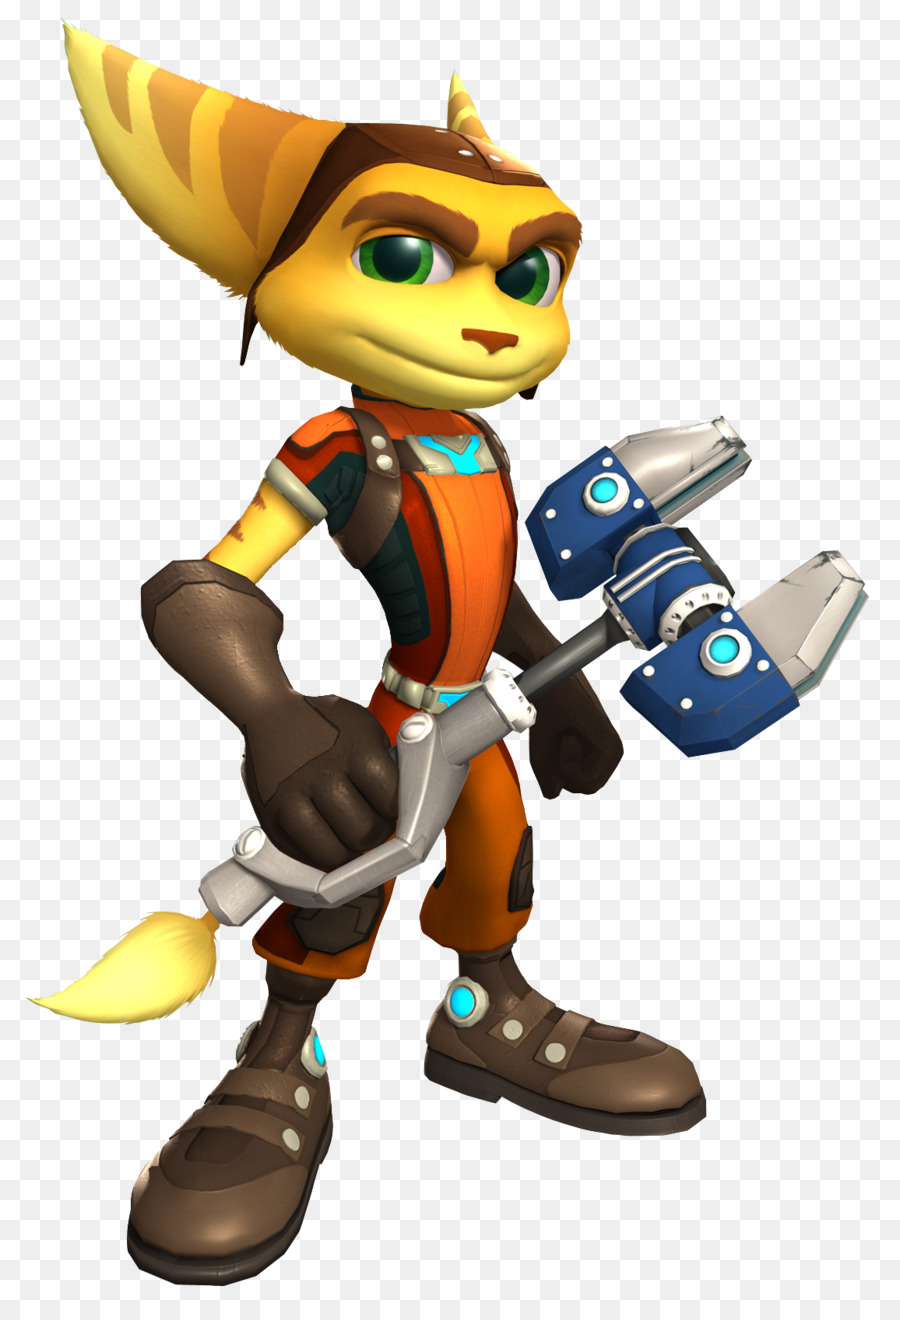 ratchet clank logo png